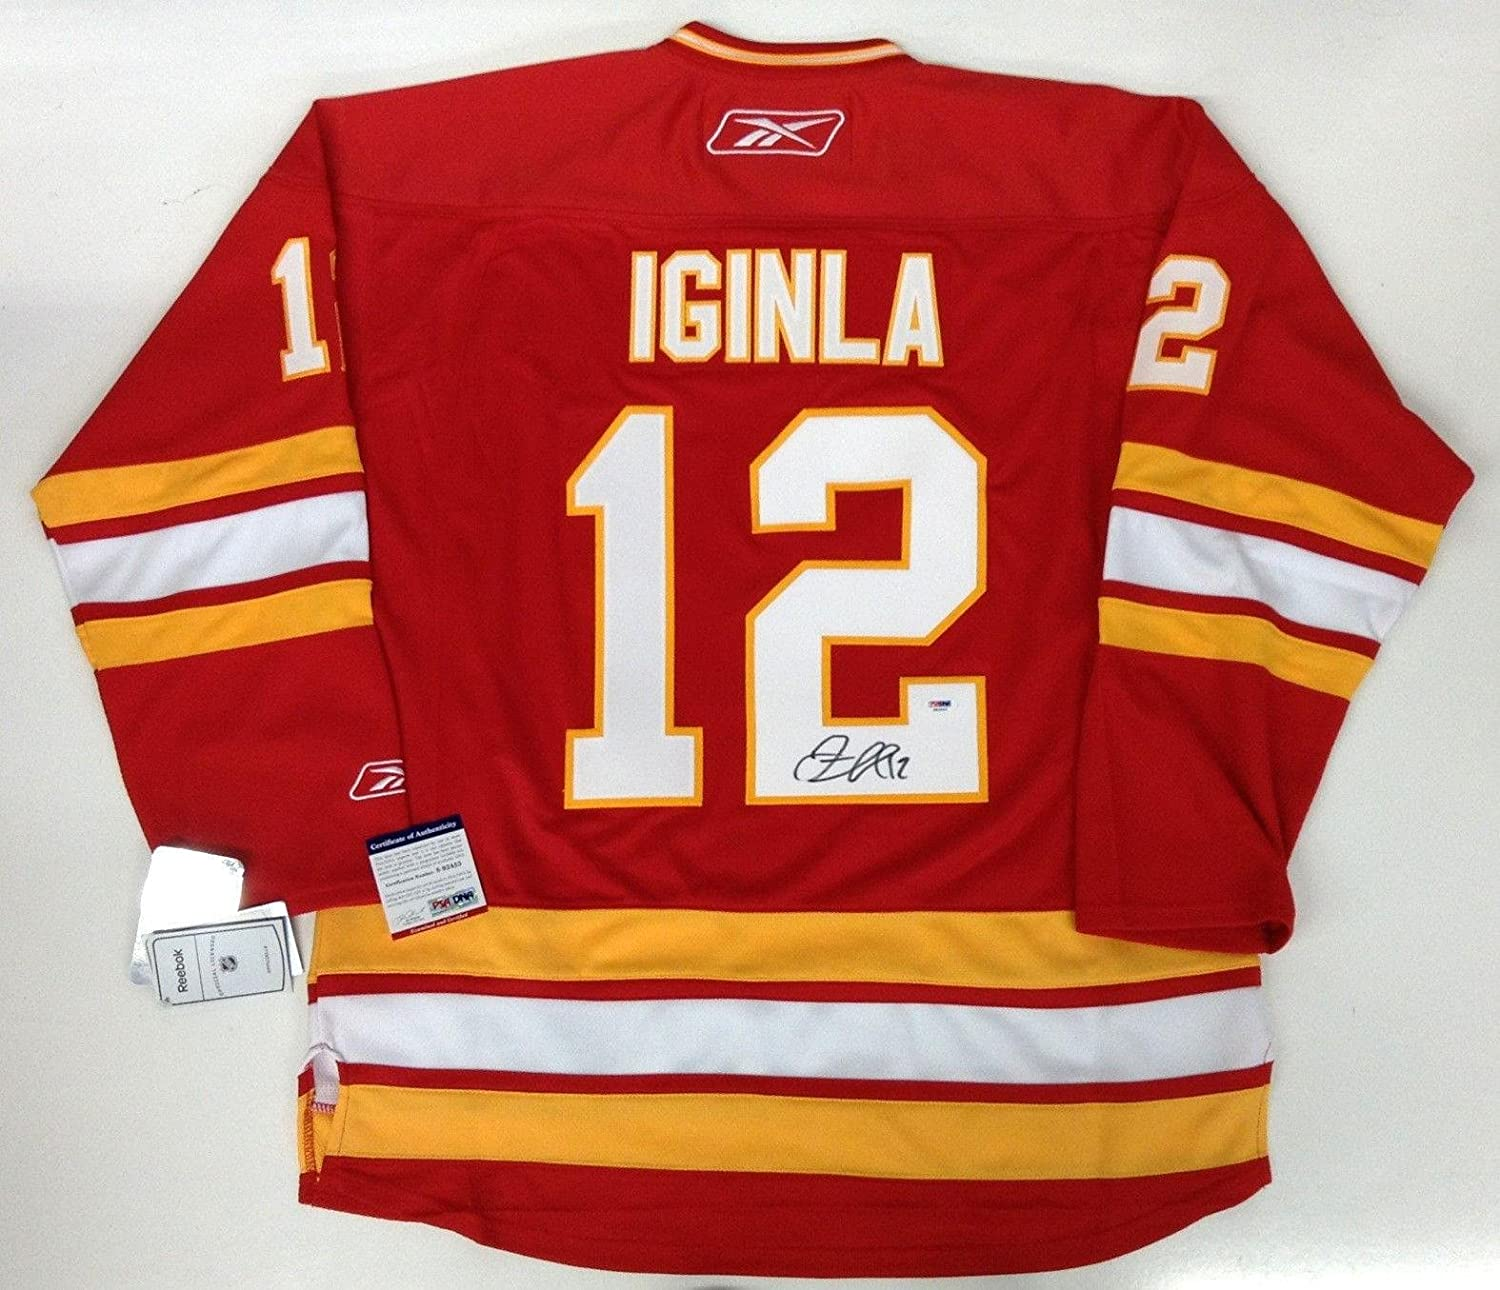 13c9baaf468 Jarome Iginla Signed Jersey - Rbk Coa - PSA DNA Certified - 5 at Amazon's  Sports Collectibles Store